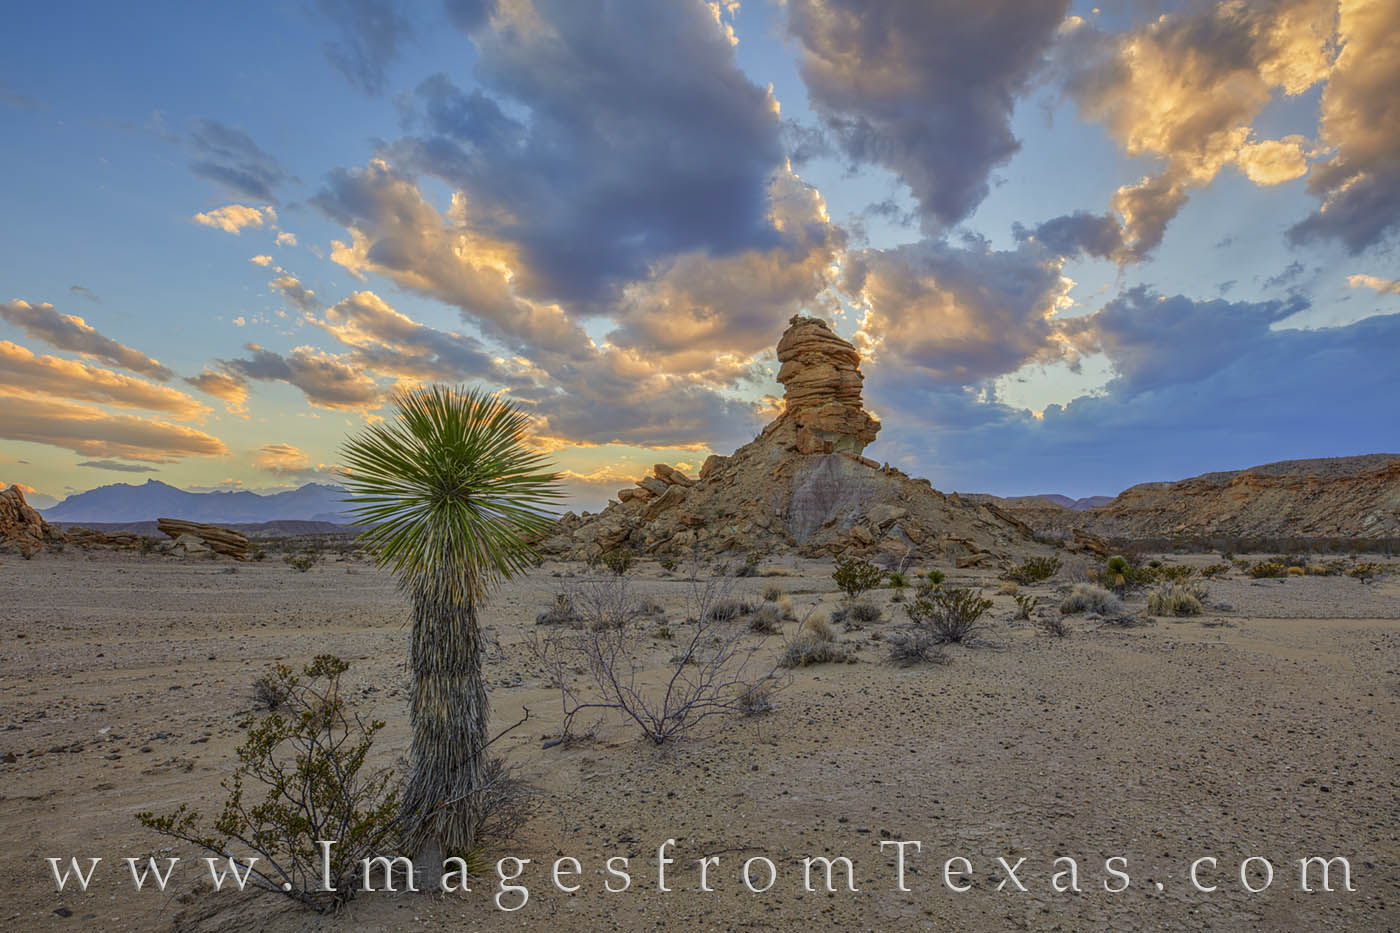 big bend, tornillo flats, chihuahuan desert, big bend prints, texas prints, west texas, sunset, national park, photo